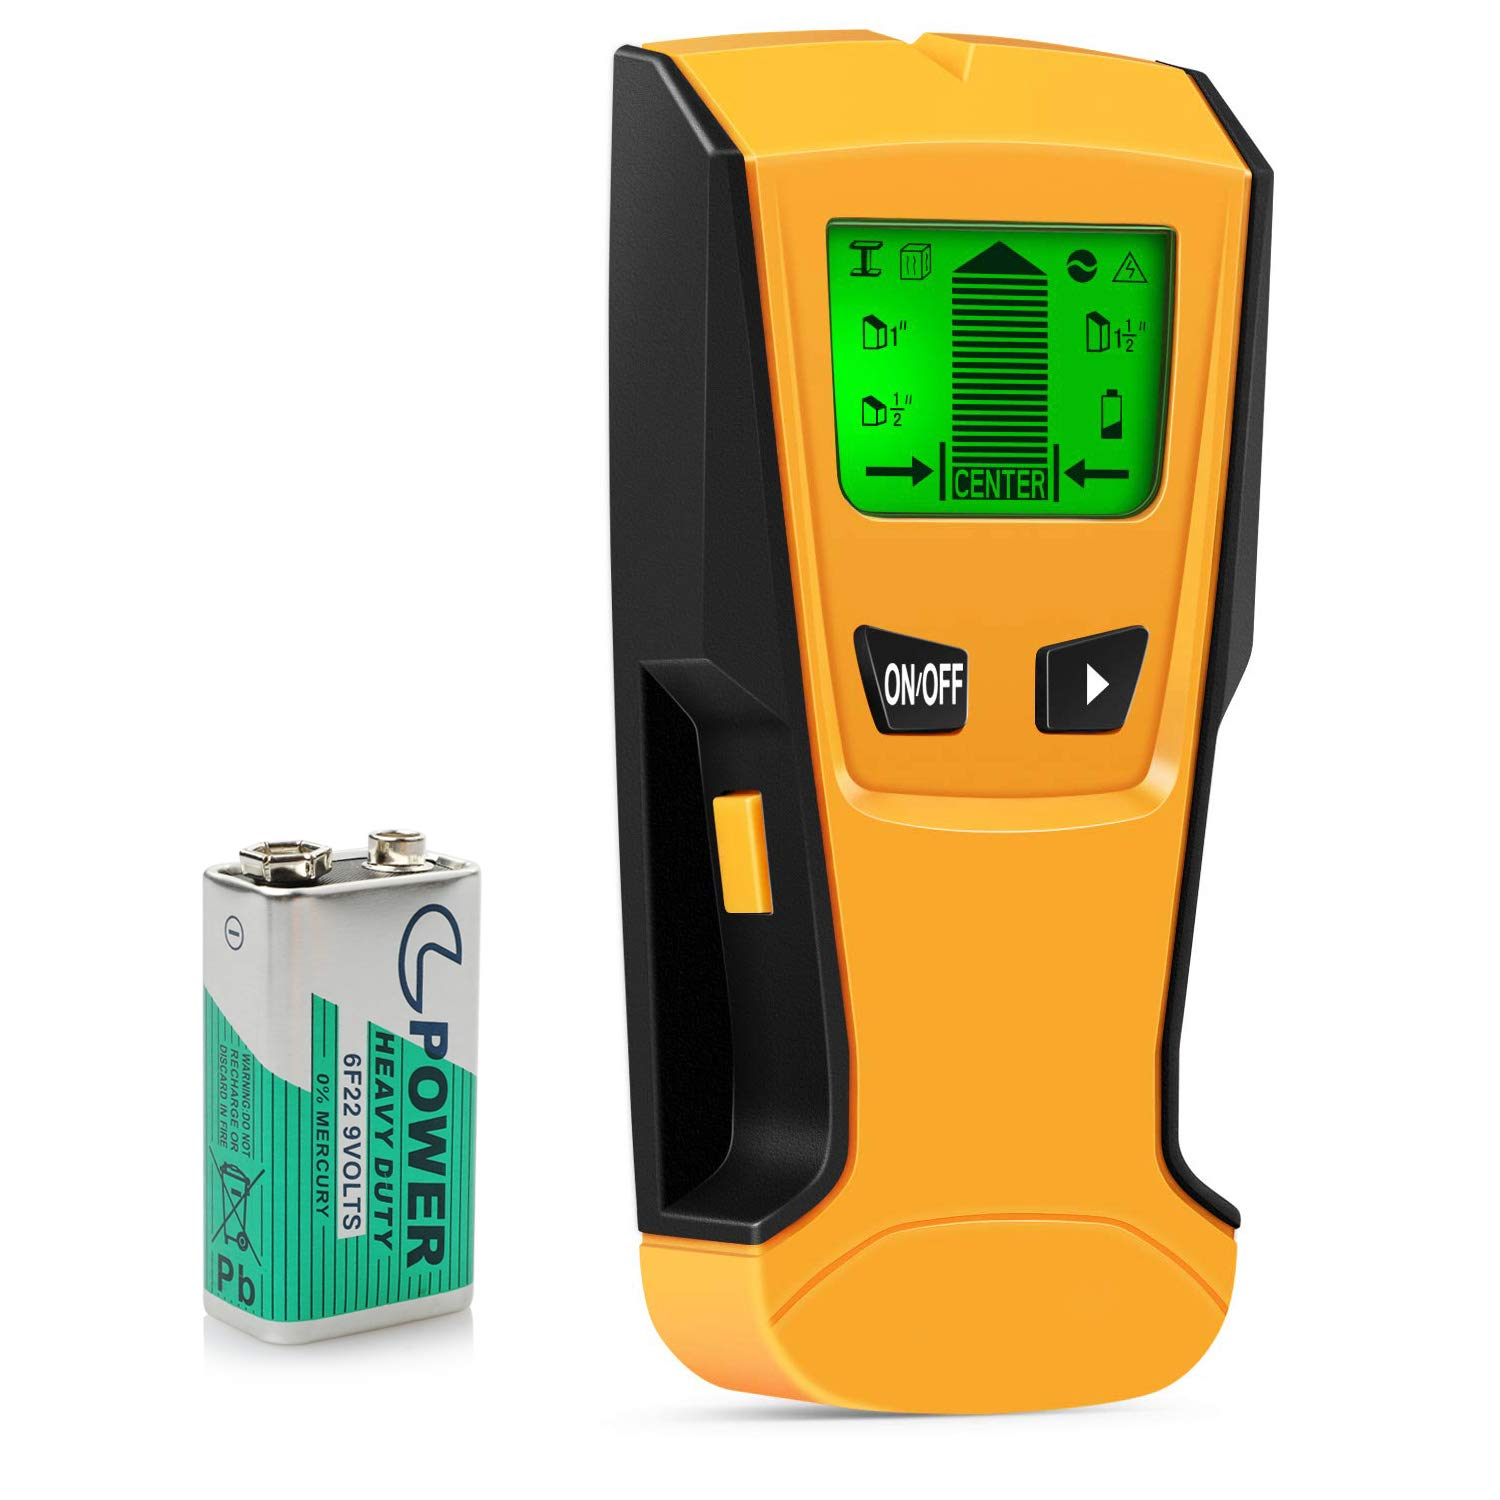 PERLESMITH Stud Finder Wall Detector 5 in 1 - Electronic Stud Sensor Wall Scanner Center Finding - with Battery LCD Display for Wood Metal Studs AC Wire Detection